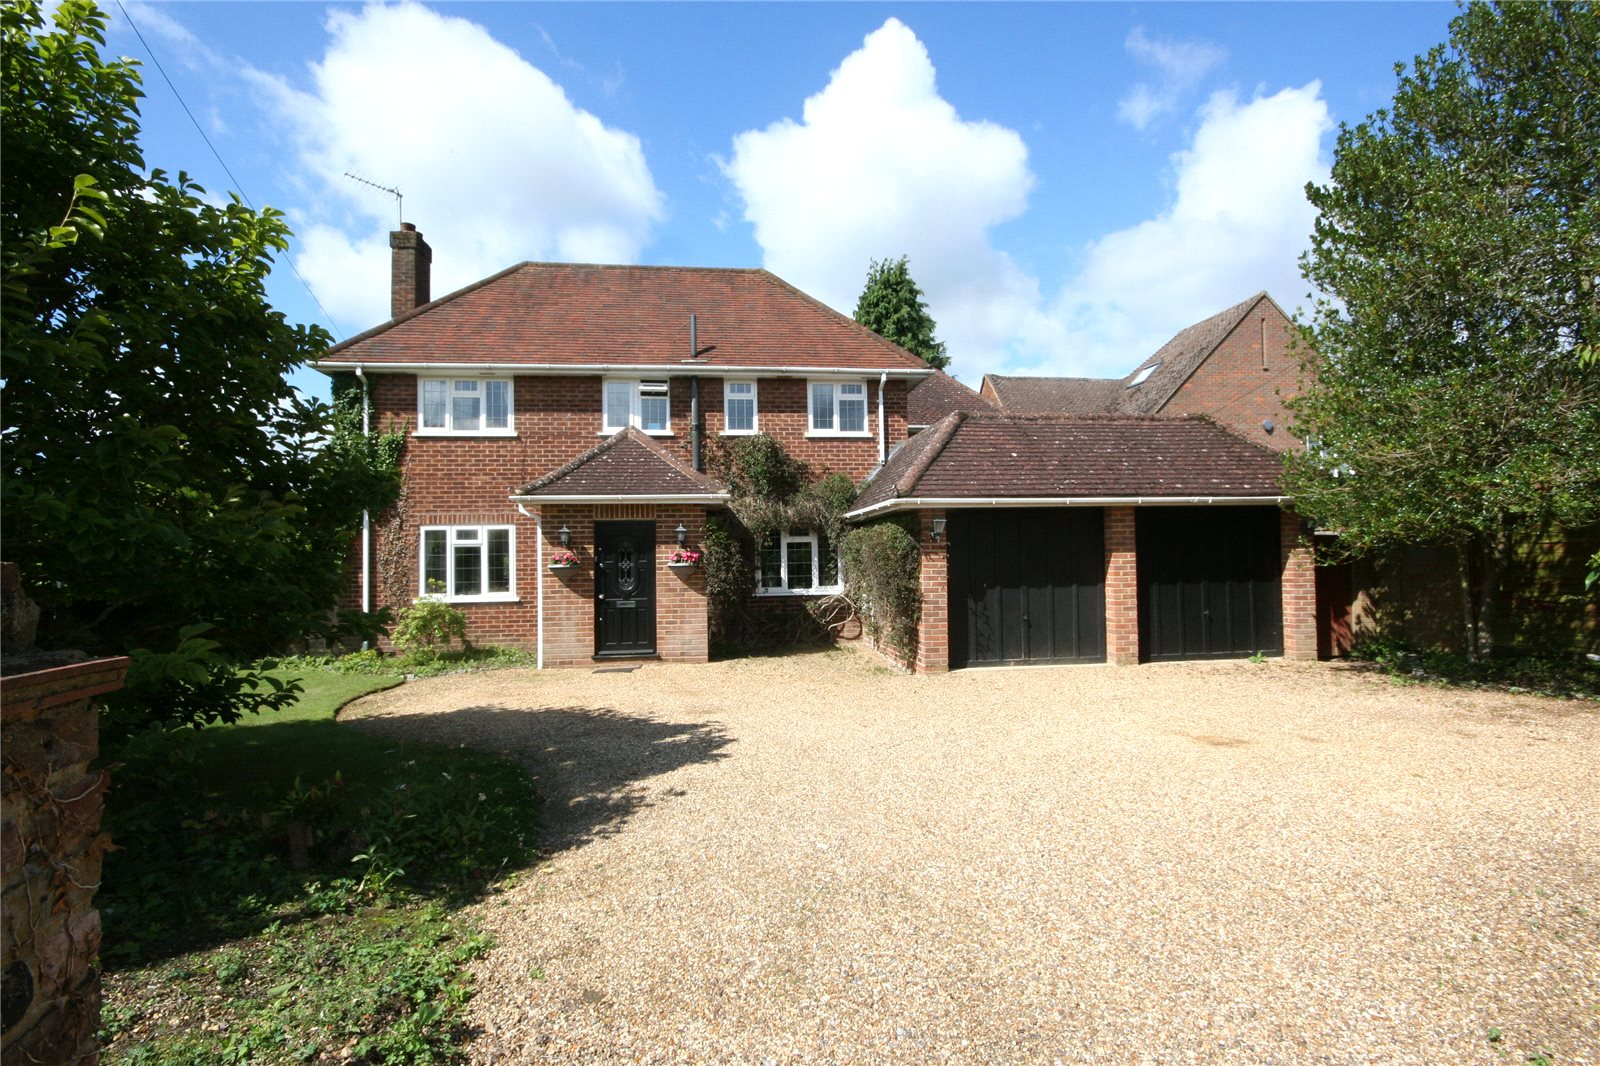 一戸建て のために 売買 アット Denham Lane, Chalfont St Peter, Gerrards Cross, Buckinghamshire, SL9 Gerrards Cross, イギリス